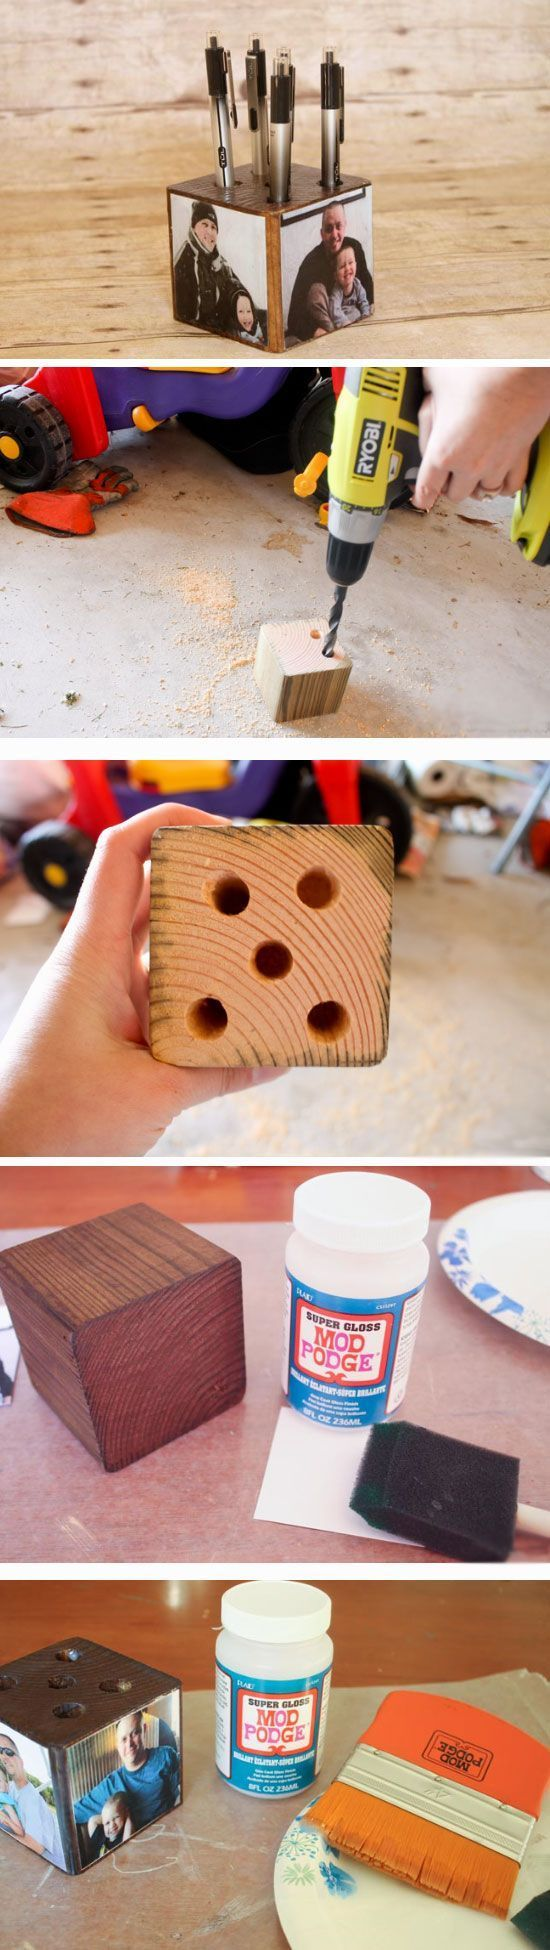 ... Gifts for Grandfather Handmade Gift Ideas for Grandparents from Kids